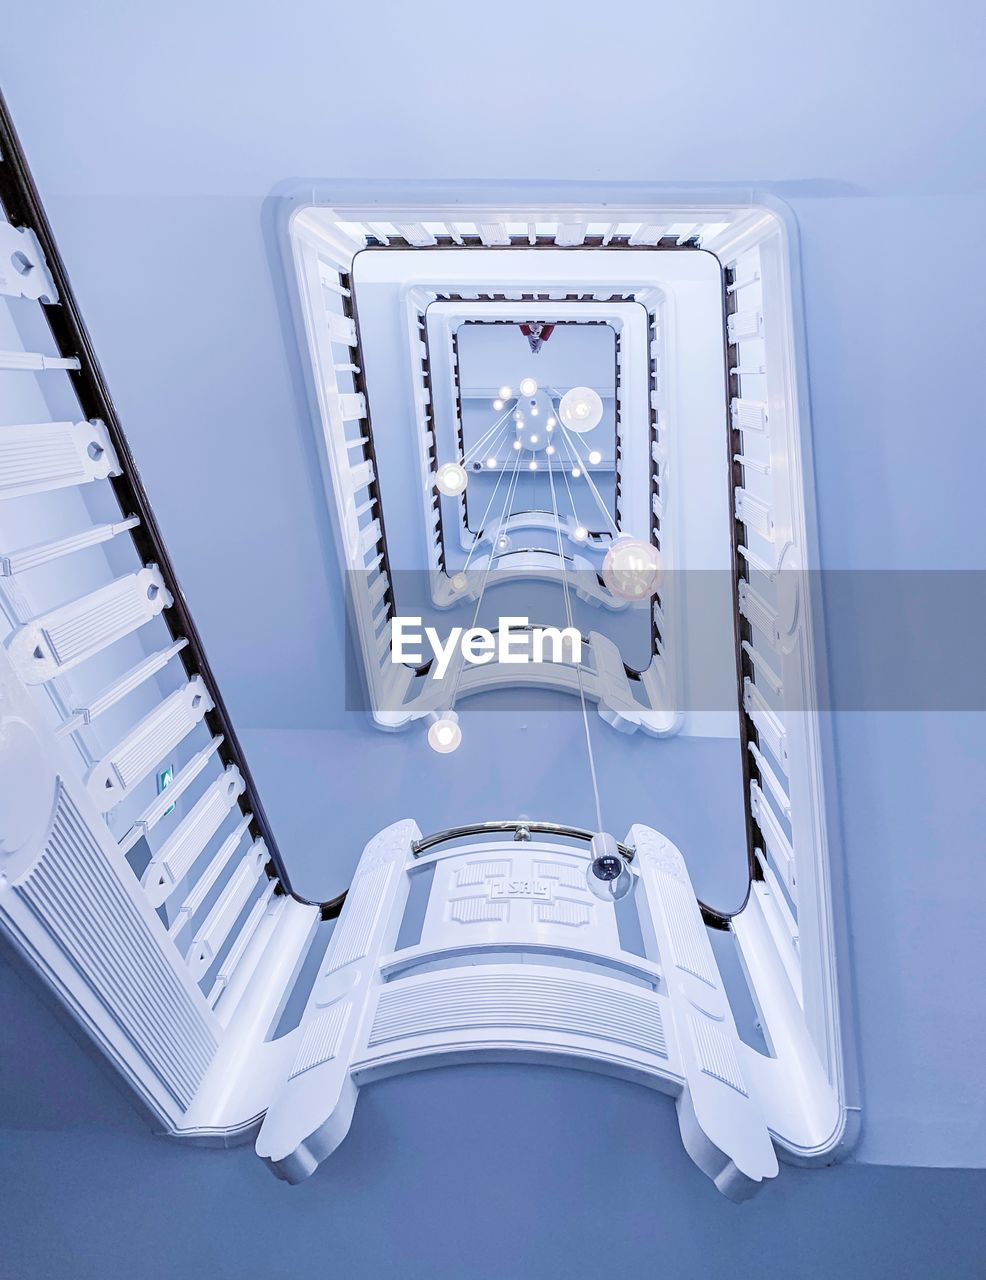 no people, architecture, indoors, building, blue, day, built structure, steps and staircases, staircase, white color, railing, design, close-up, technology, pattern, metal, high angle view, direction, directly below